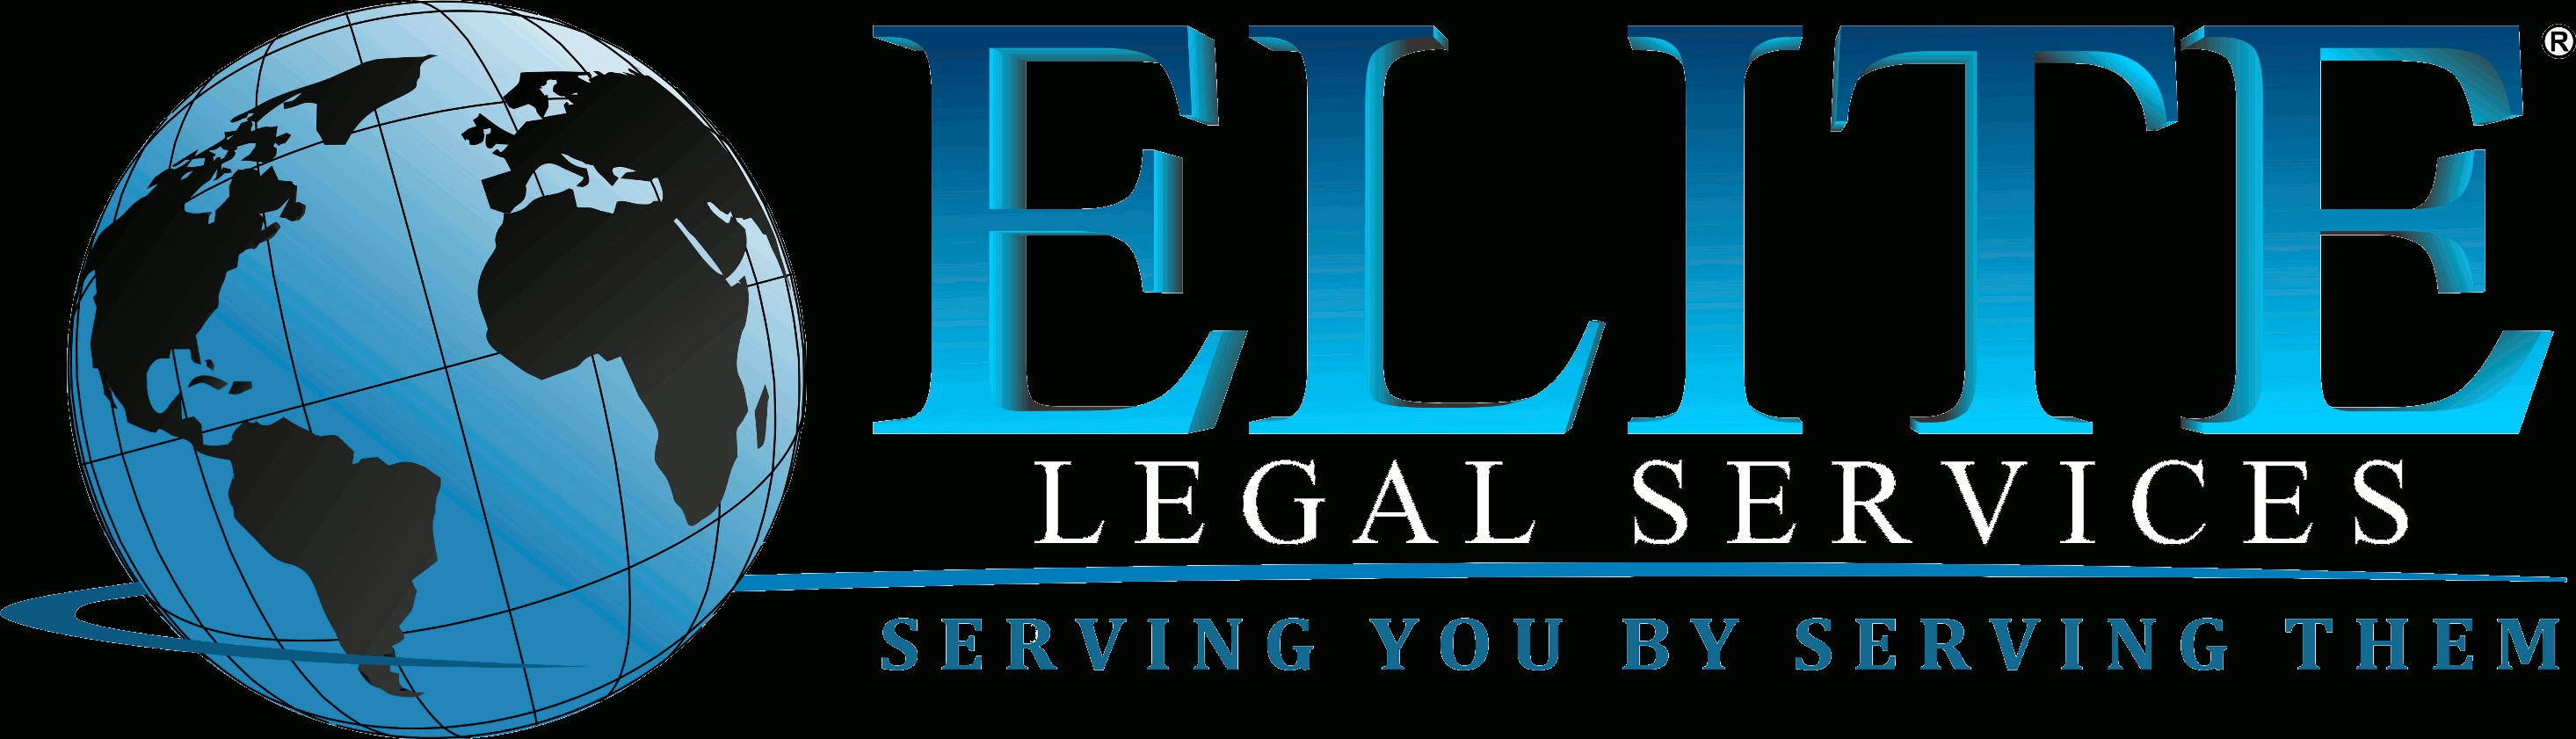 Process Serving, Investigations, Background Checks, Skip Tracing, Asset Searches